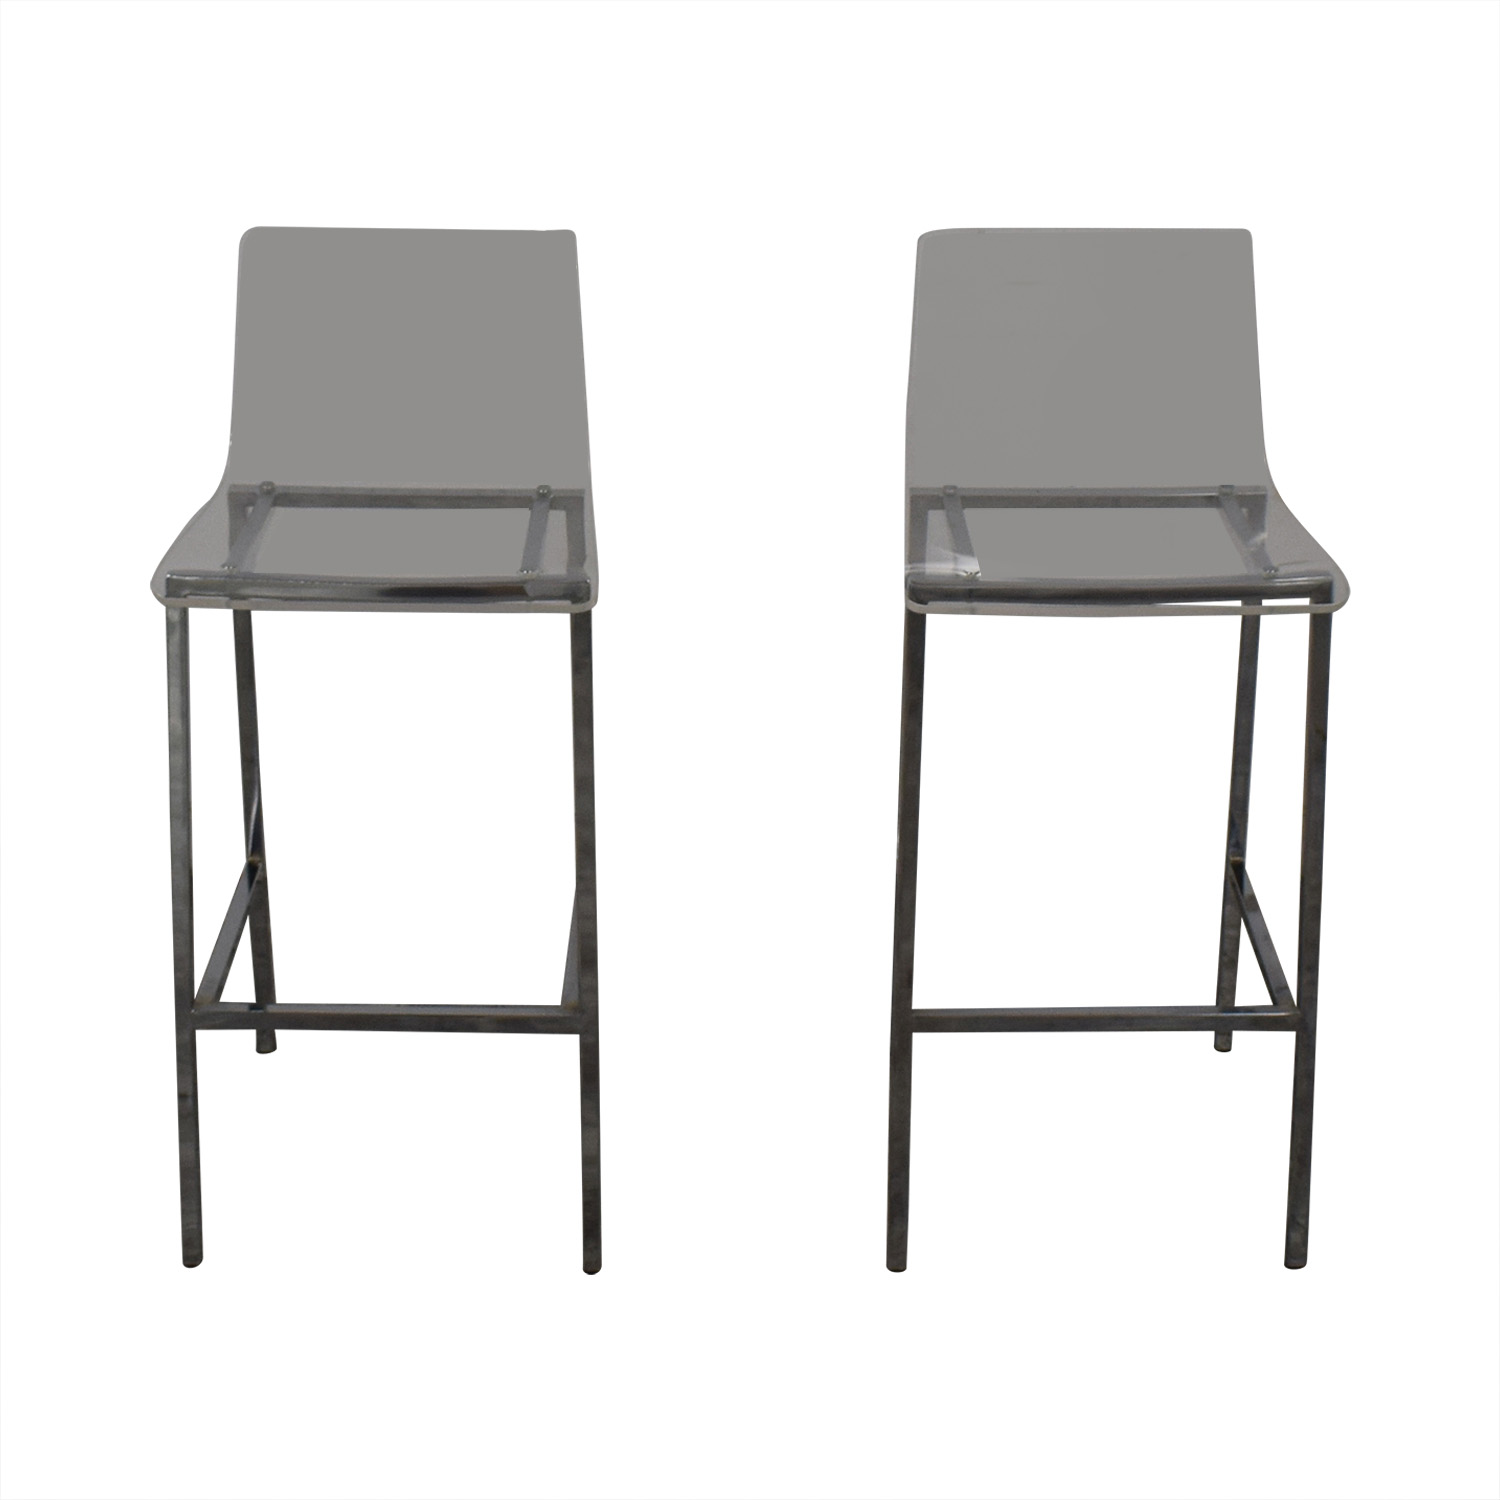 CB2 CB2 Bar Stools discount